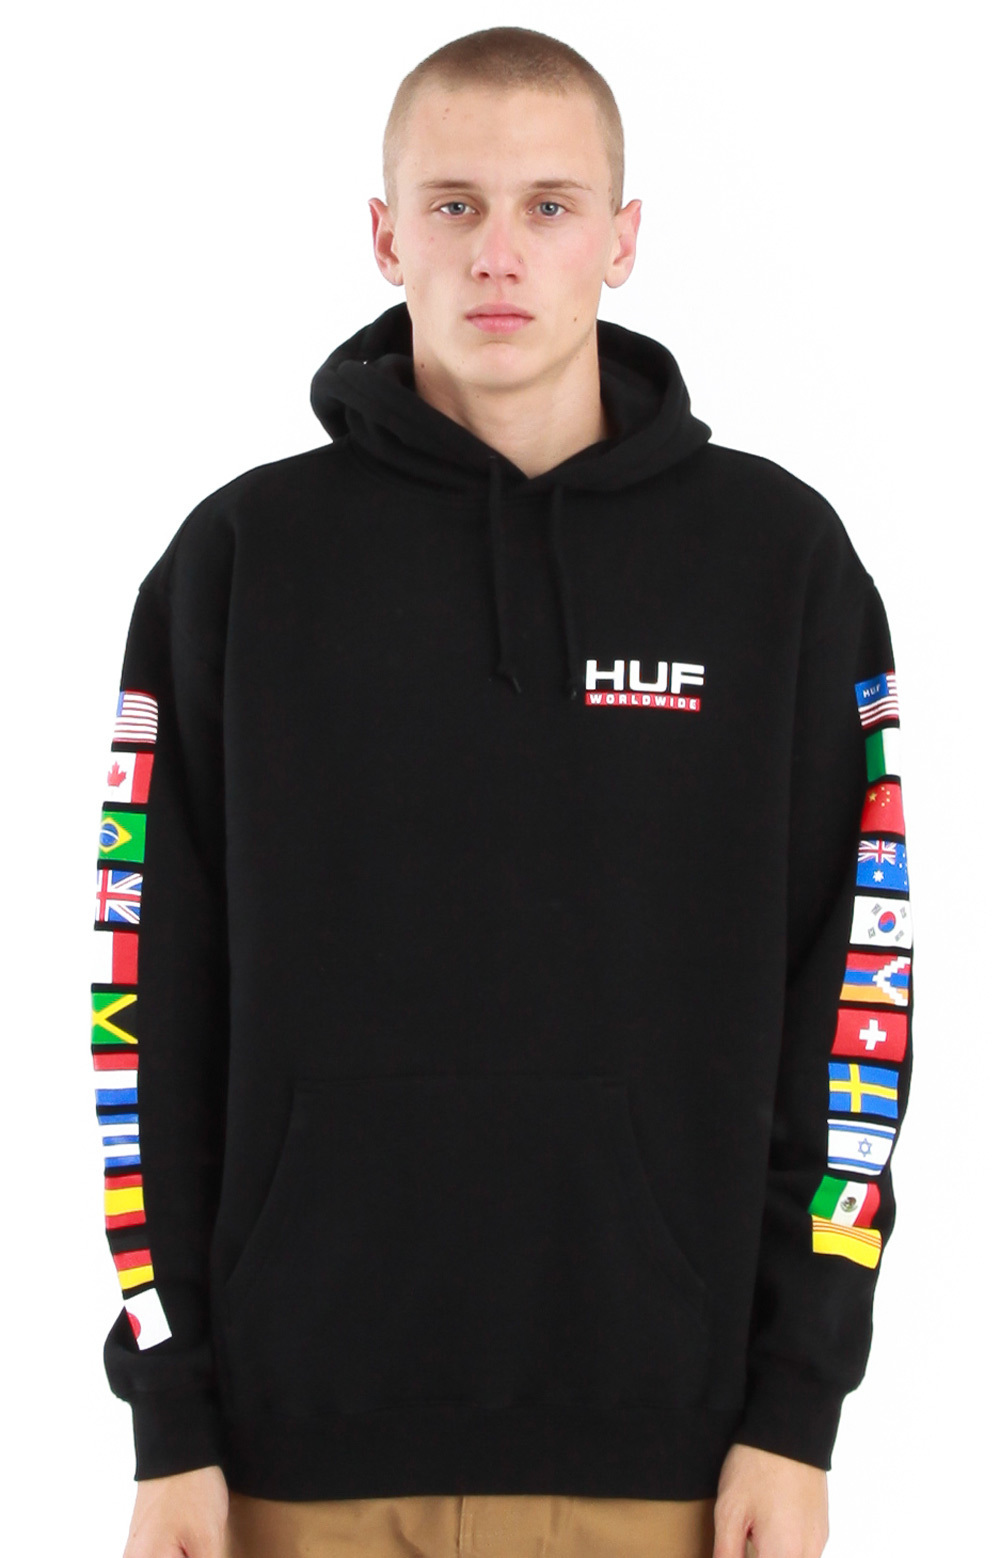 関税・送料込み★Stadium United Pullove HUF Hoodies★国内発送